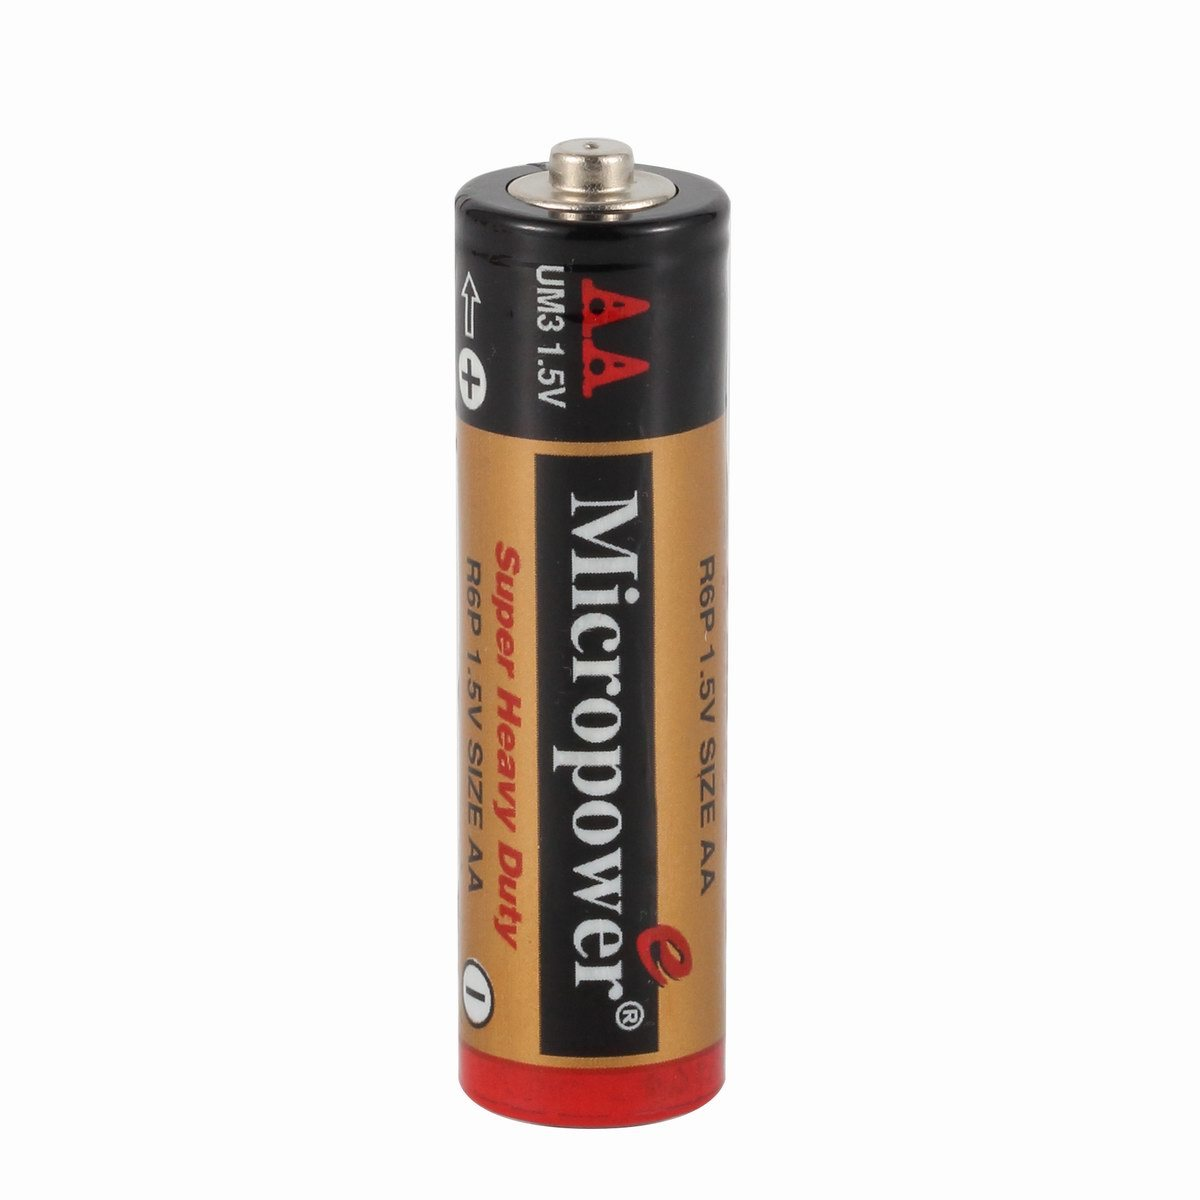 China 2020 Hot Sale 1 5v Aa Am3 R6p Battery With Best Quality China Battery And Dry Battery Price